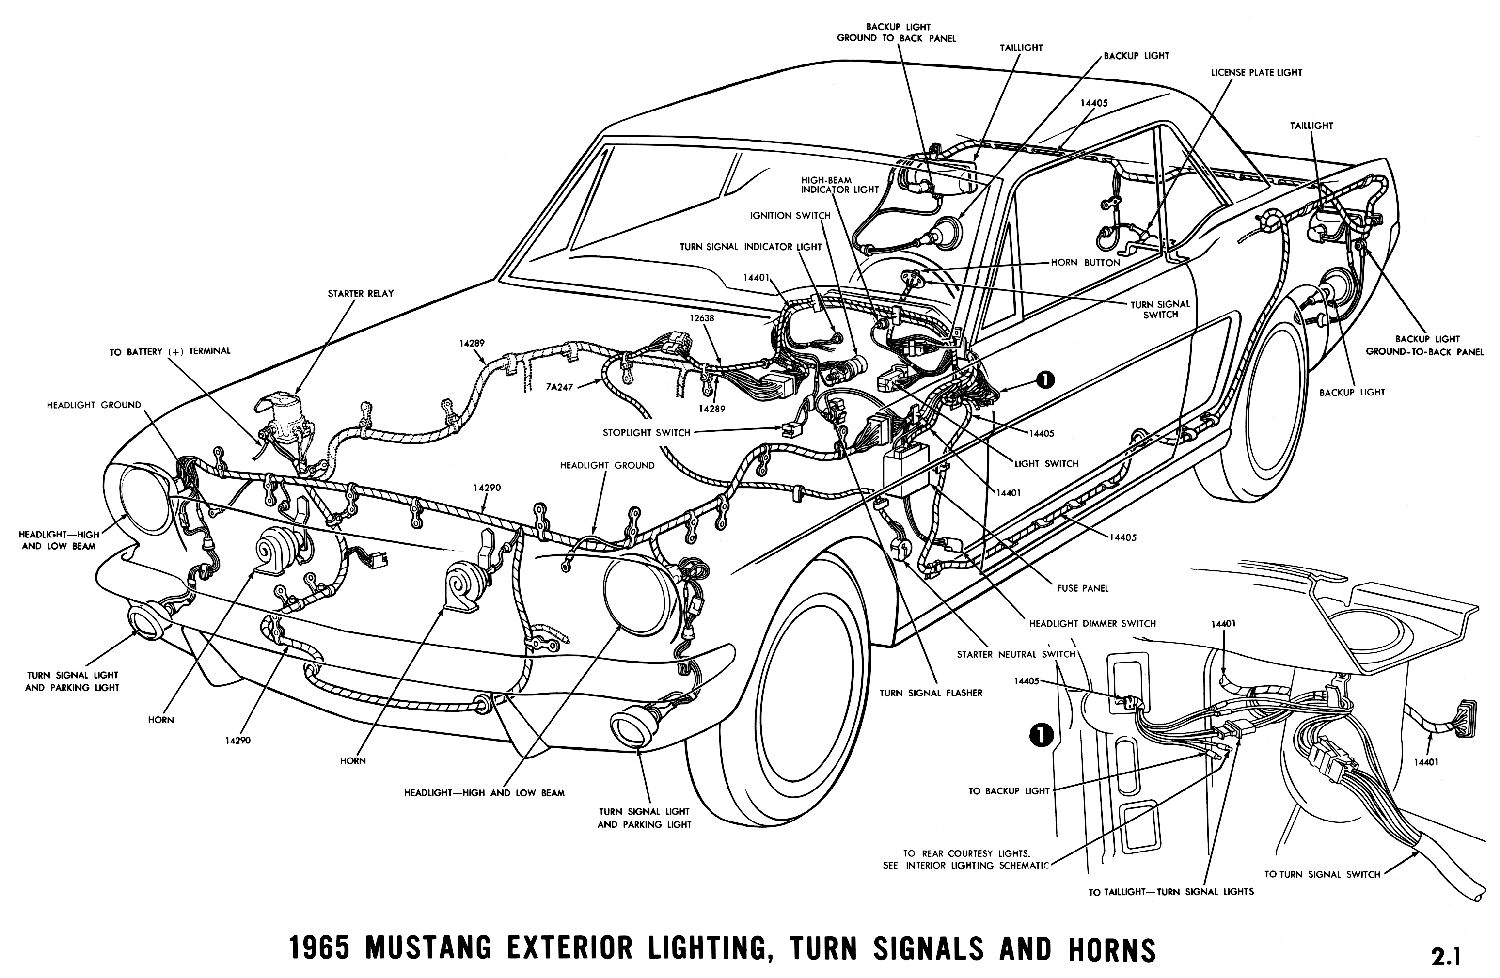 1965 Fairlane Wiring Harness also 1965 Mustang Dash Wiring also 1968 Camaro Wiring Diagram likewise 1968 Firebird Wiring Diagram besides Wiring Diagram 1967 Chevelle Ss396. on 1967 chevelle wiring diagrams online